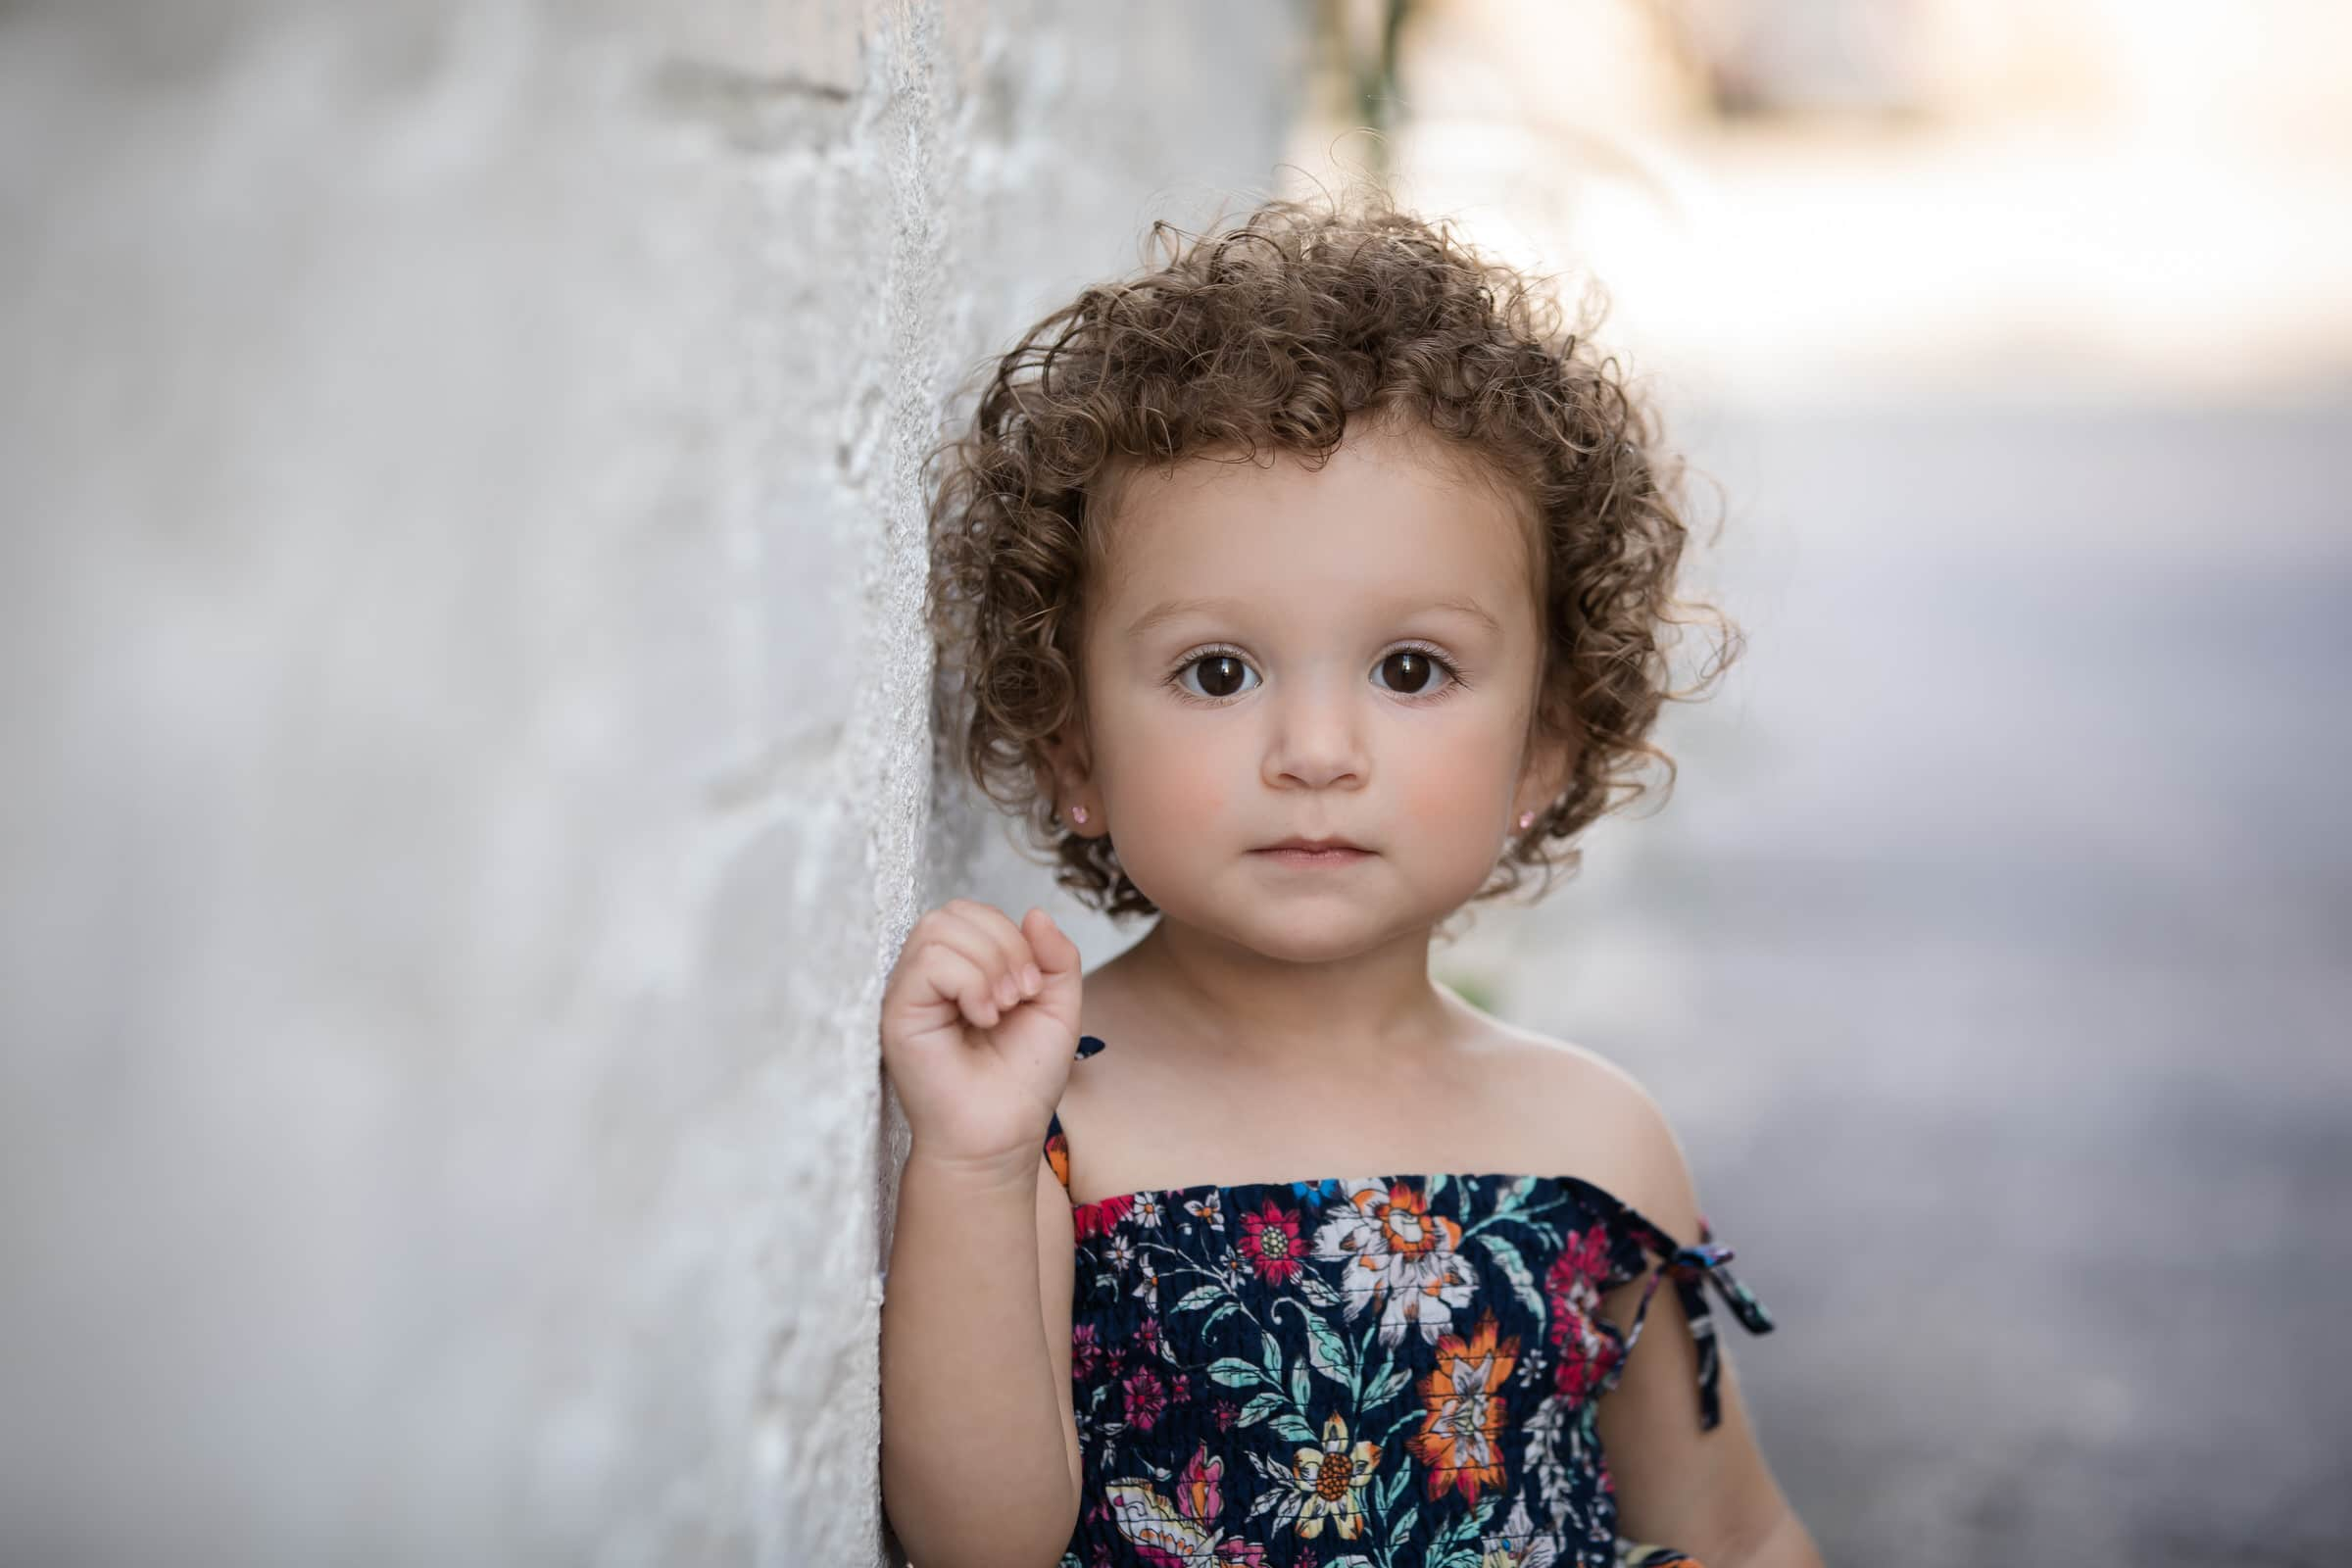 cute girl with curly hair